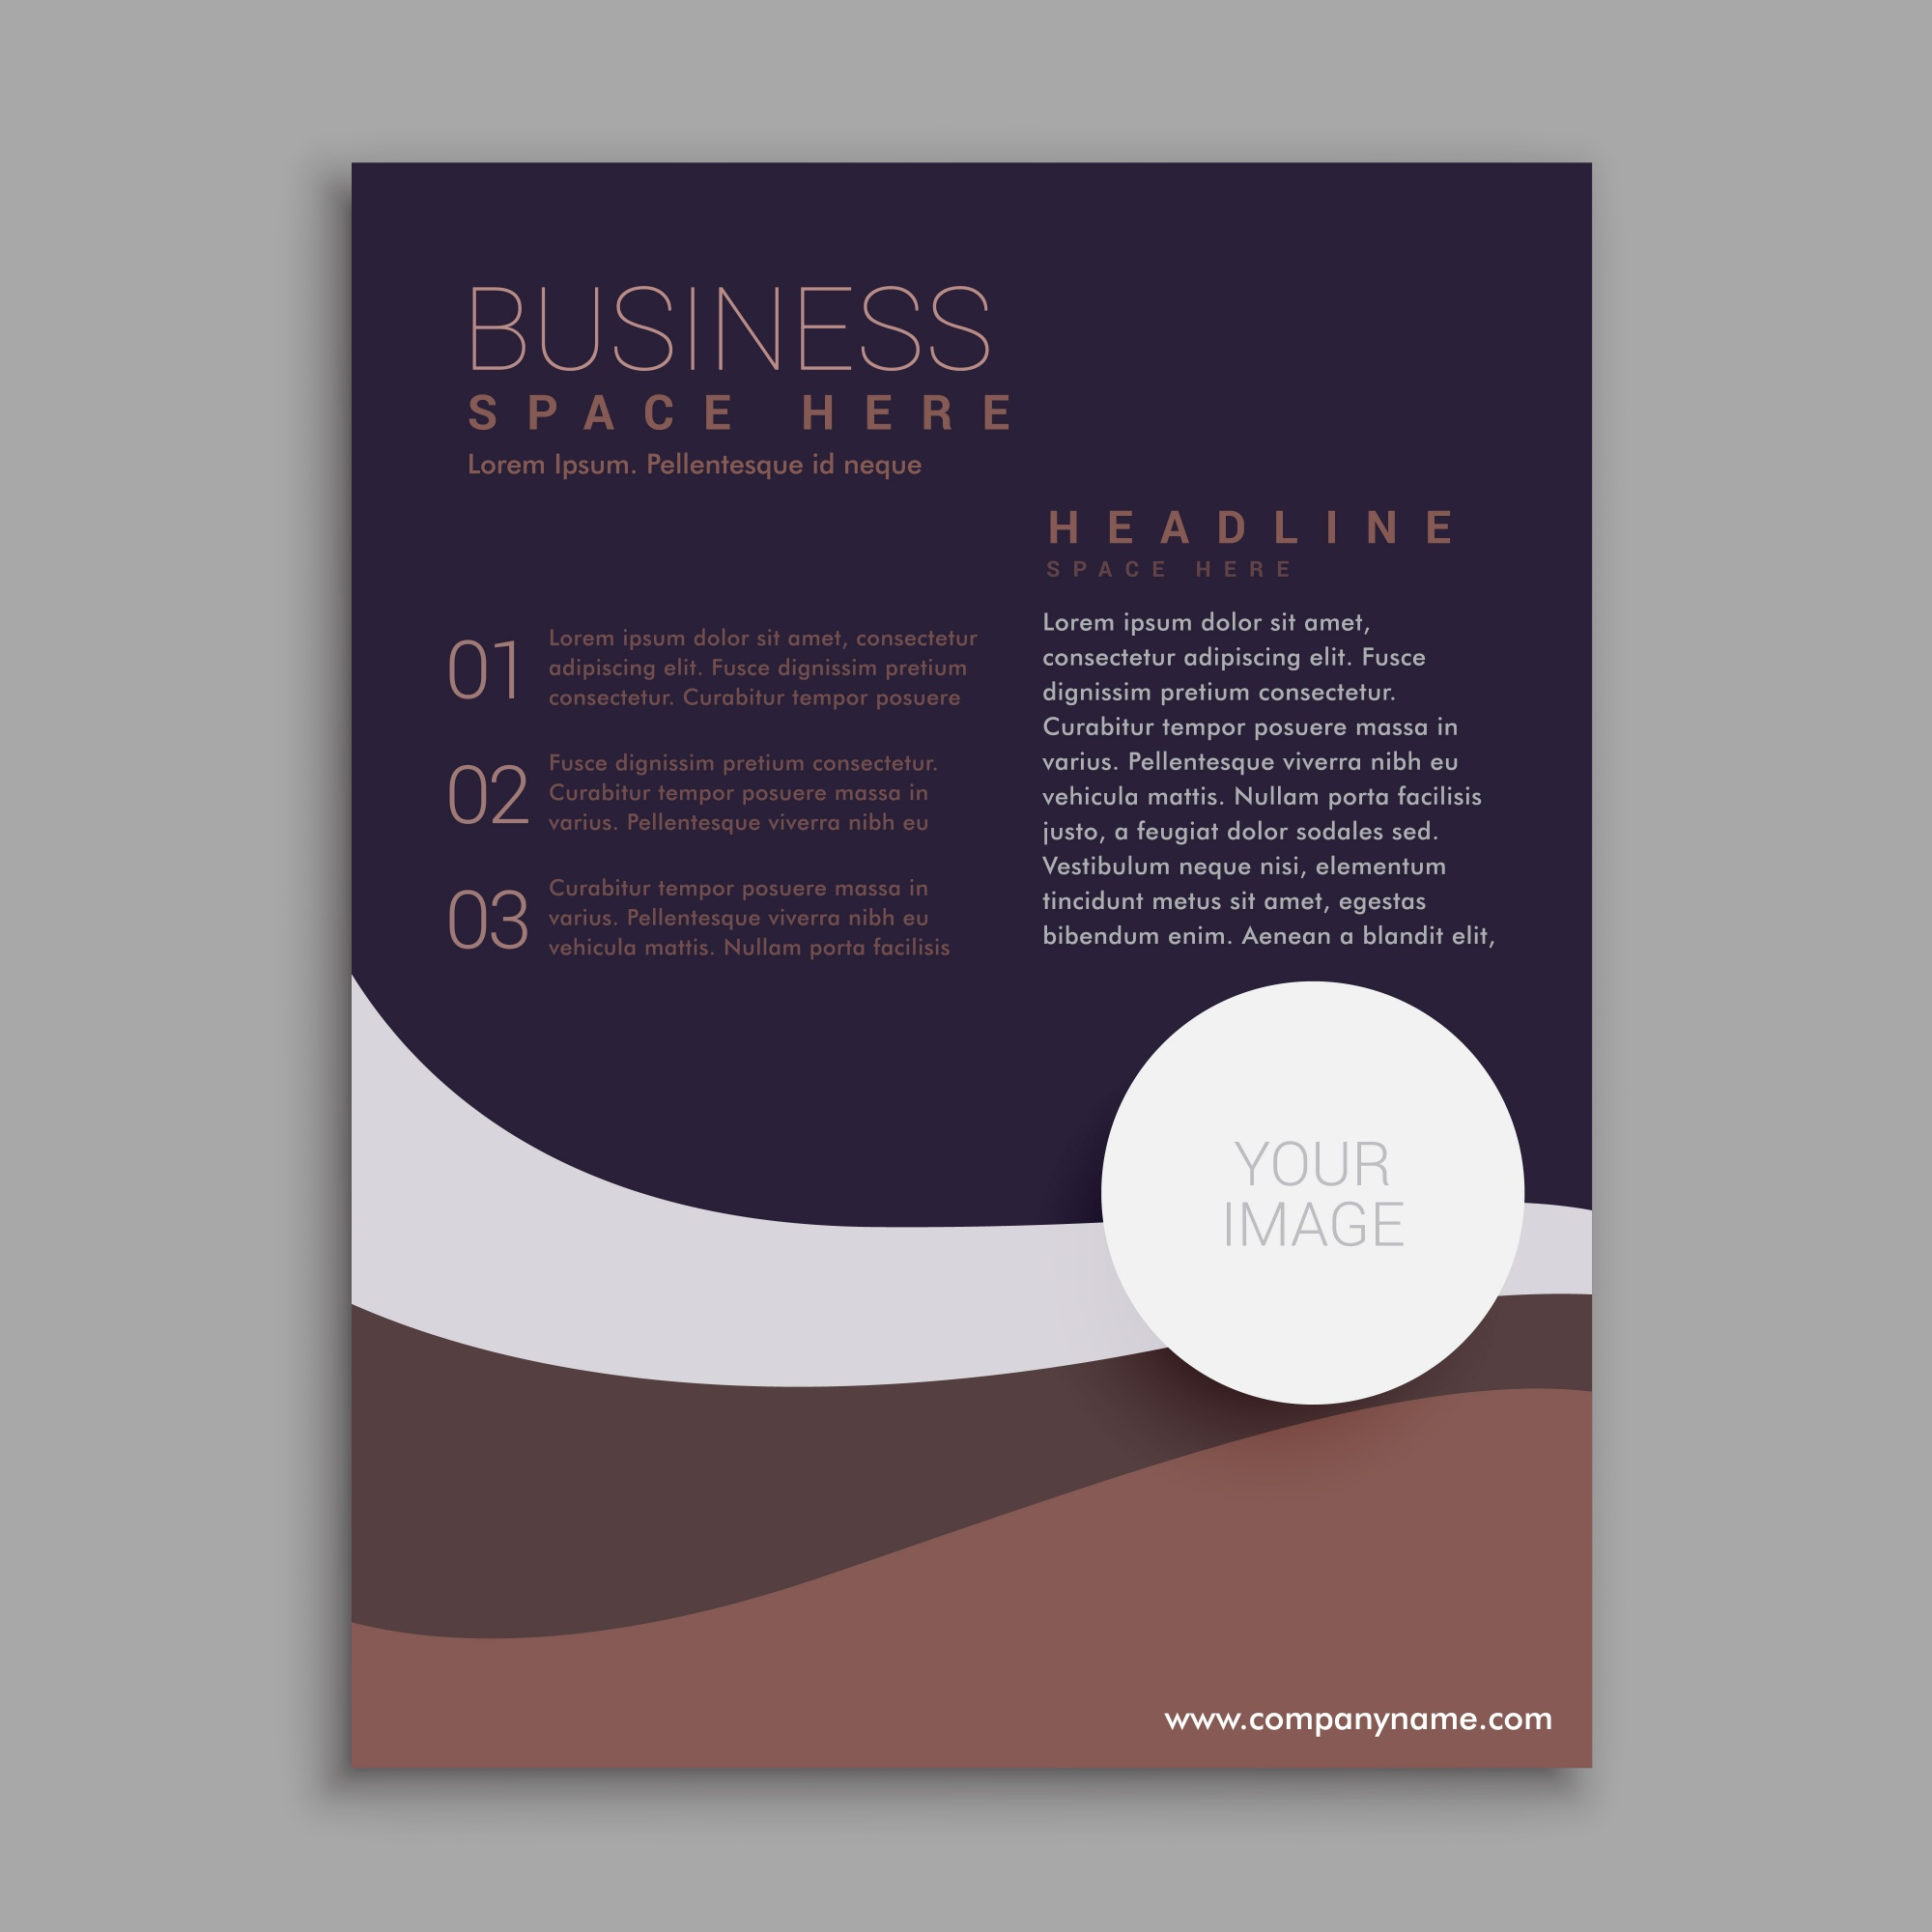 Geometric brochure with dark colors